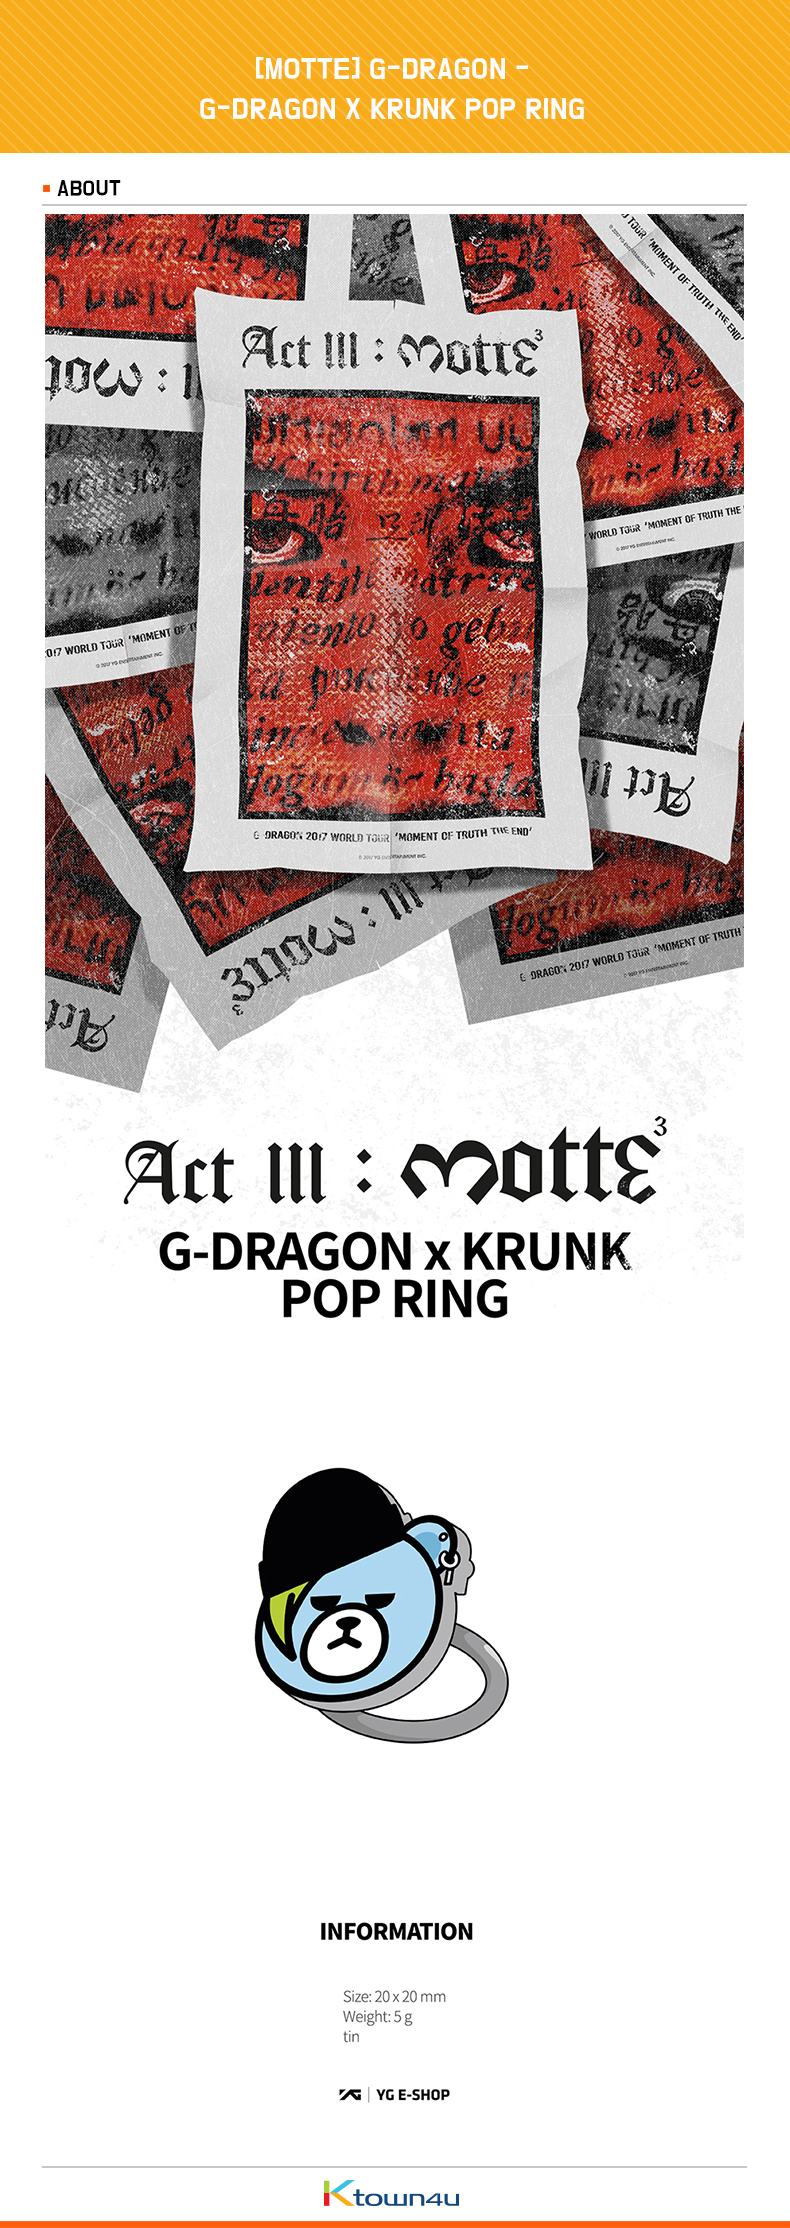 [MOTTE] G-DRAGON - G-DRAGON X KRUNK POP RING  (Order can be canceled cause of producing issue)